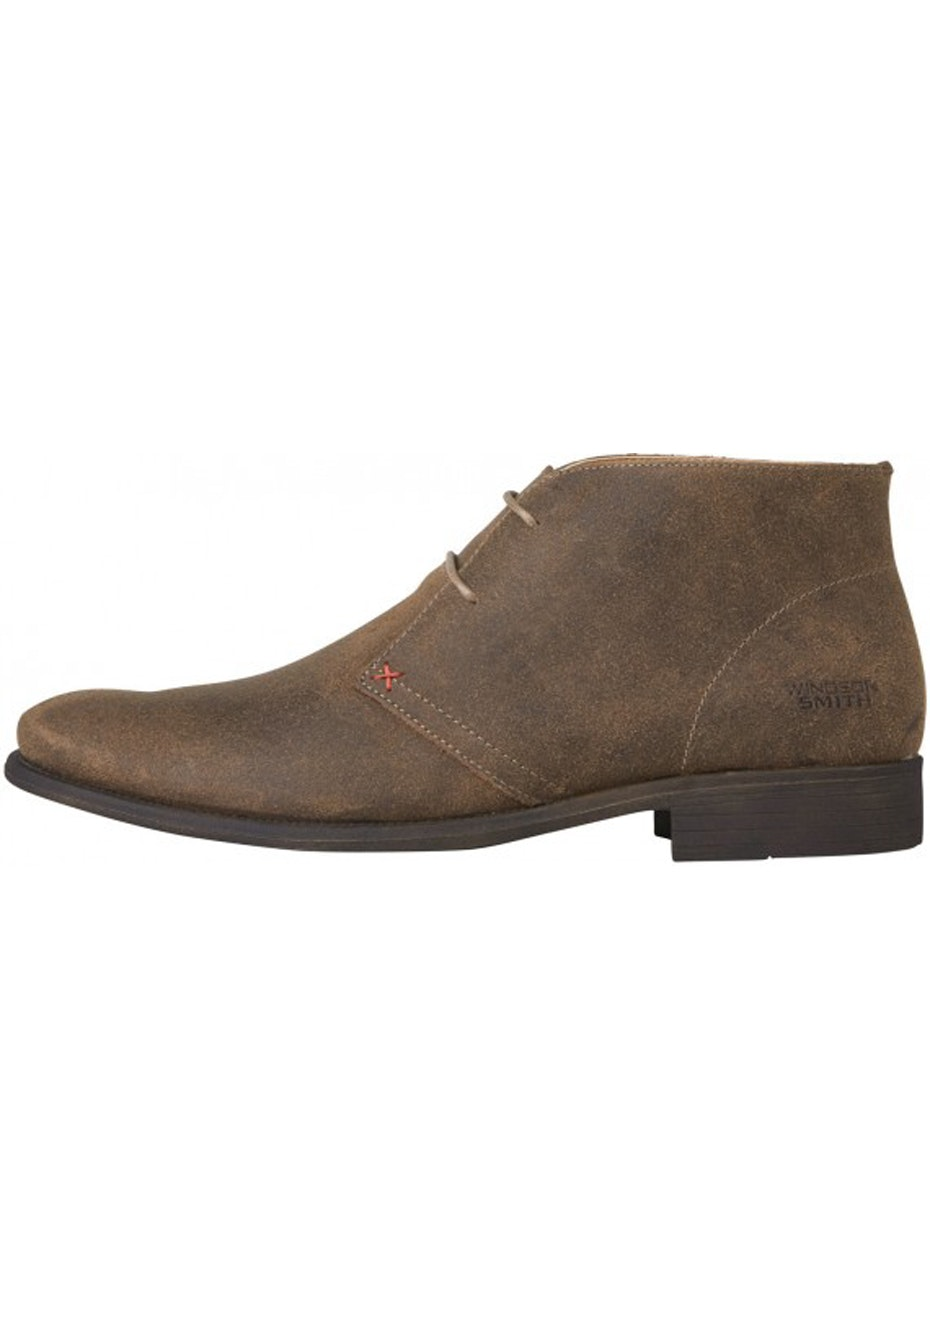 Windsor Smith - Harvard - Taupe Oil Suede